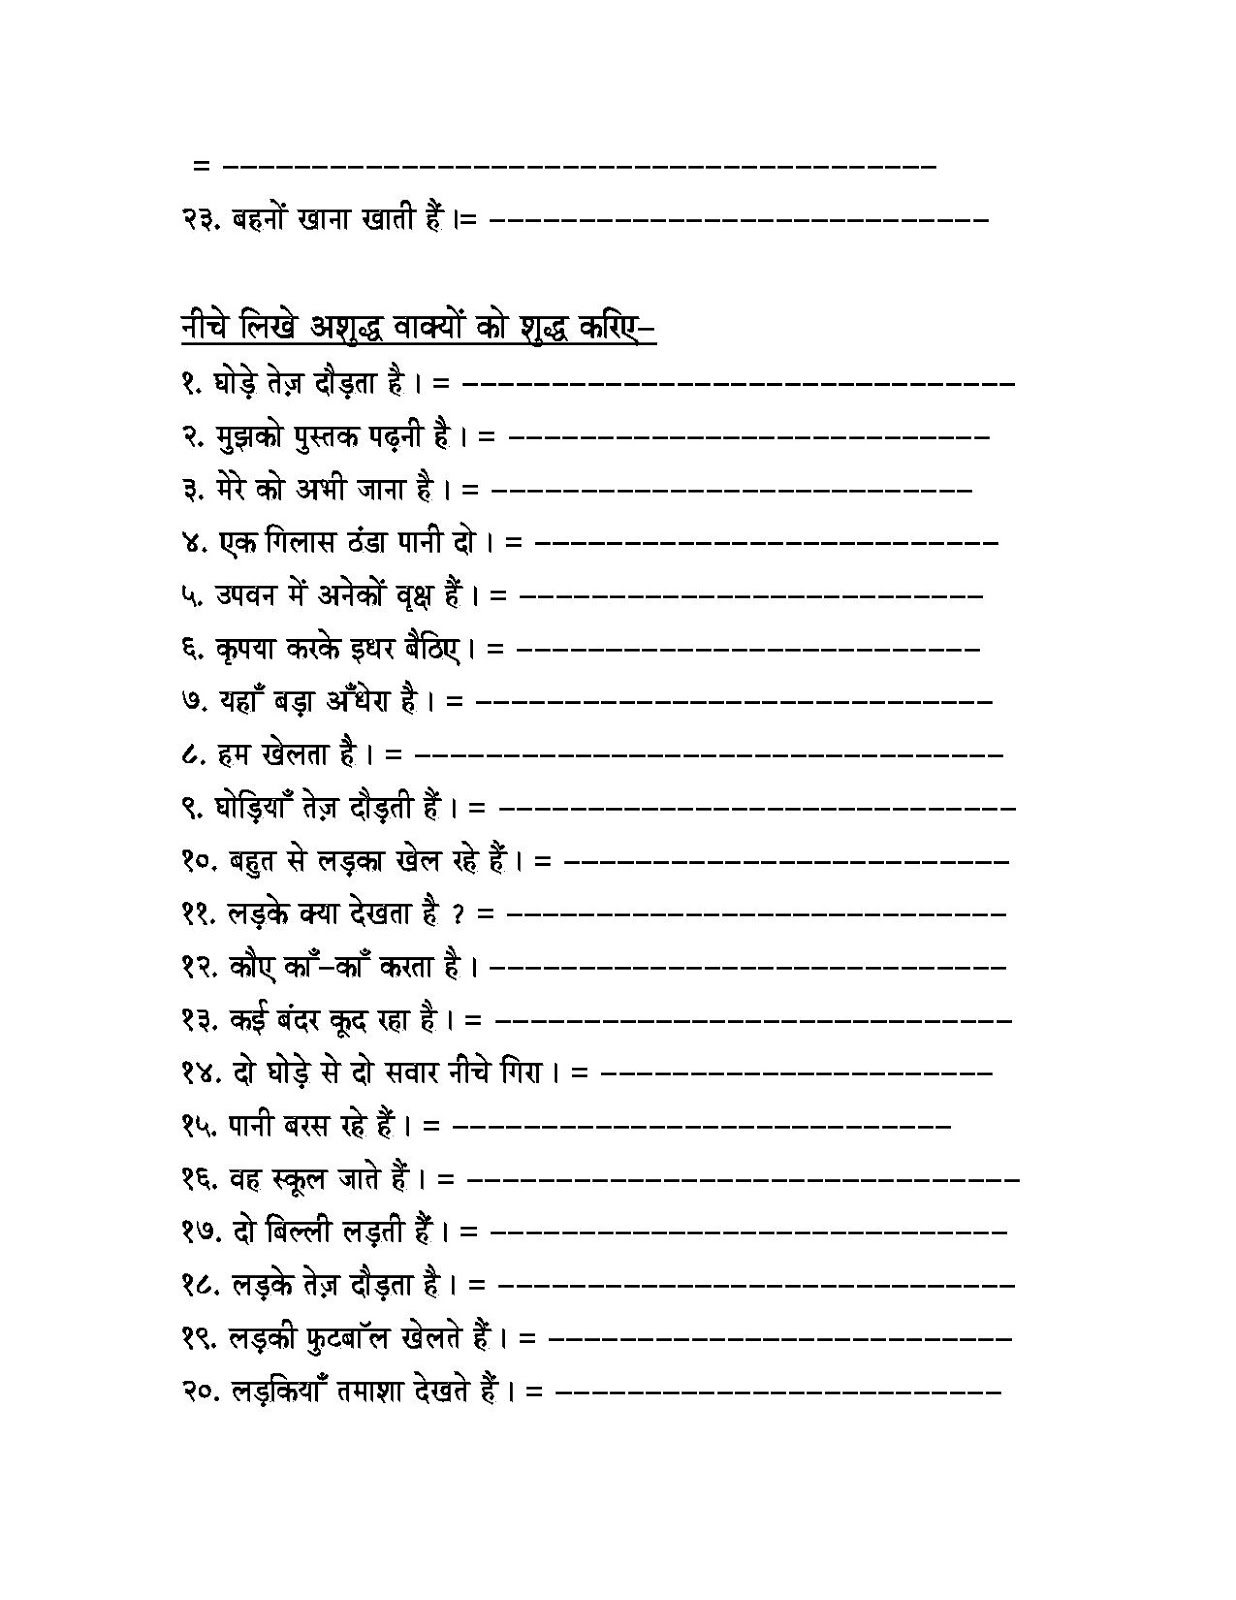 grammar worksheets for class 7 cbse hindi grammar work sheet collection for classes 56 7 8. Black Bedroom Furniture Sets. Home Design Ideas